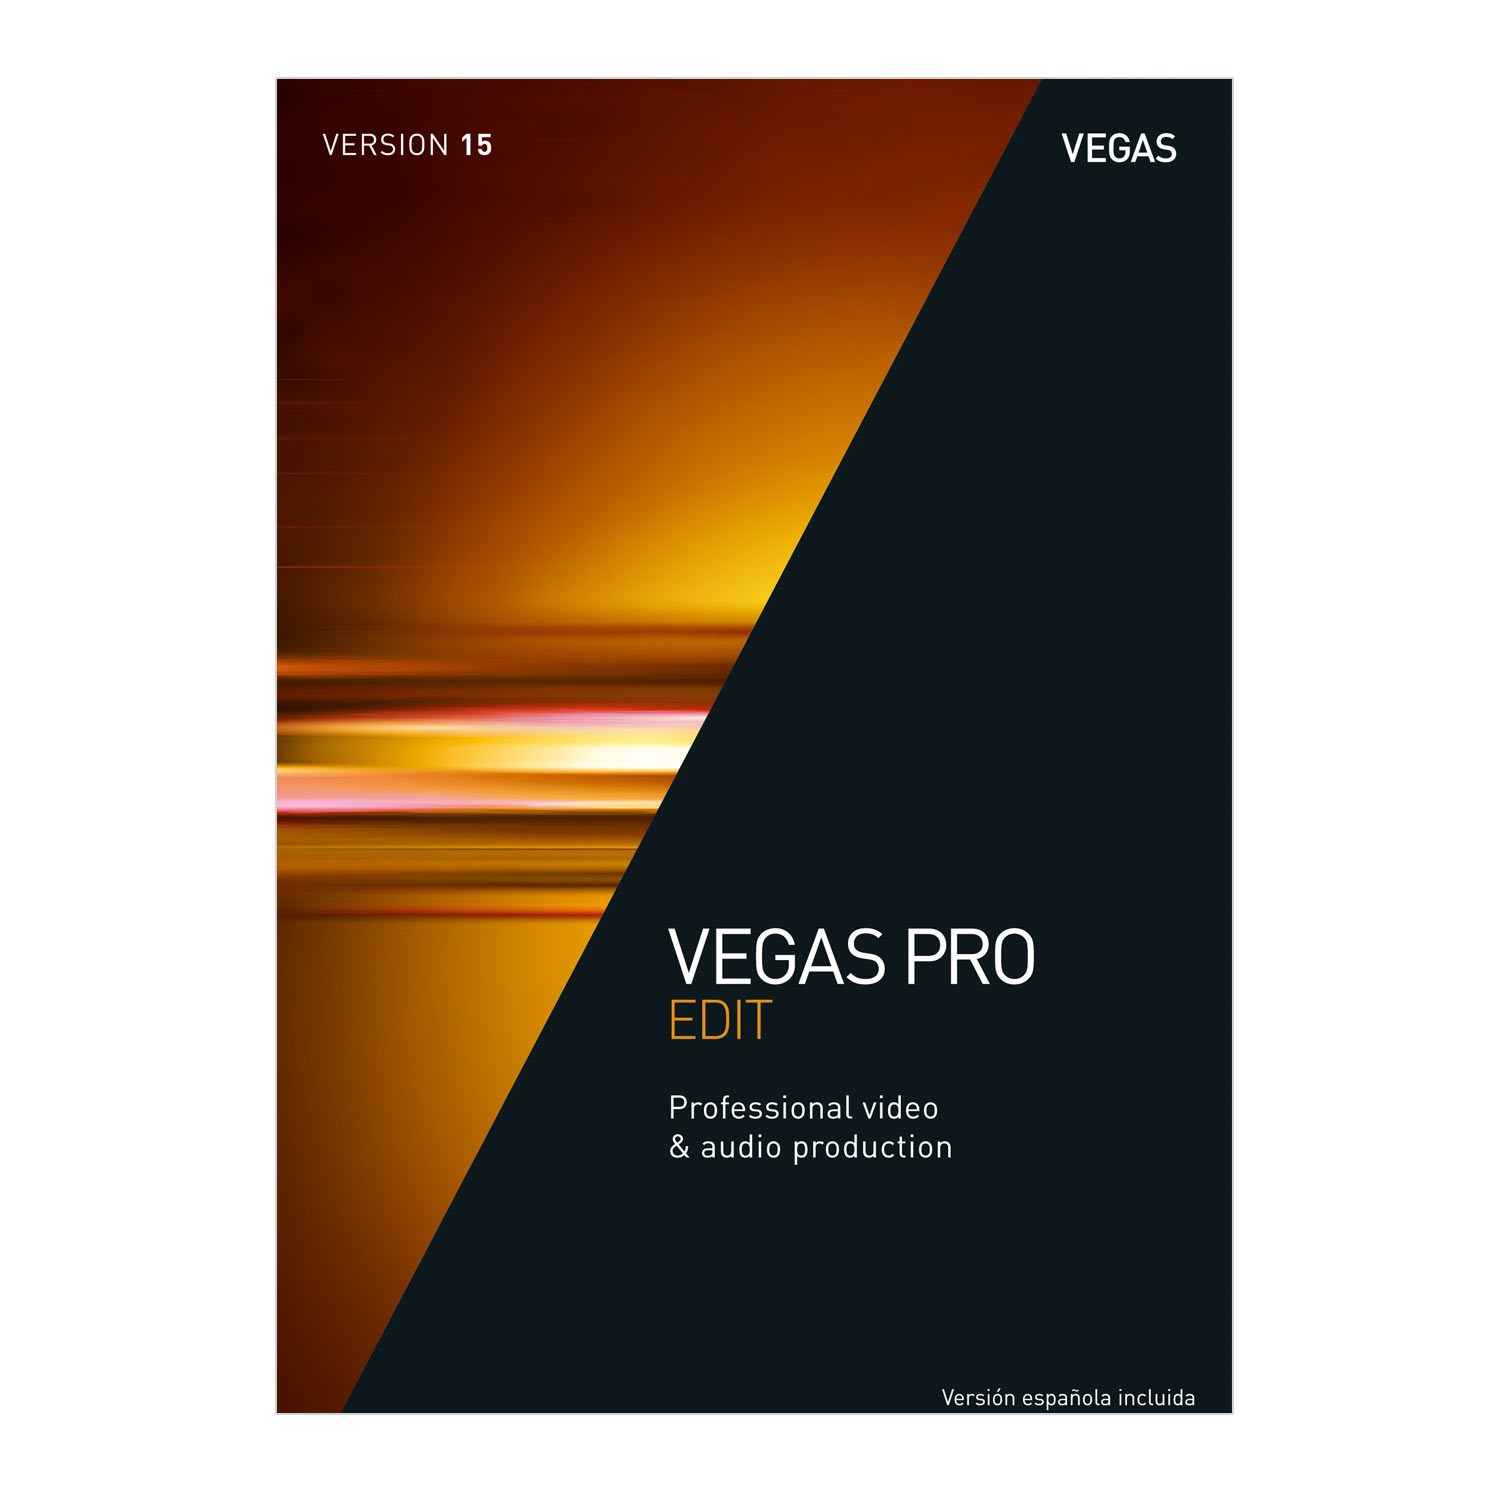 VEGAS Pro 15 Edit – Professional Video & Audio Editing [Download]